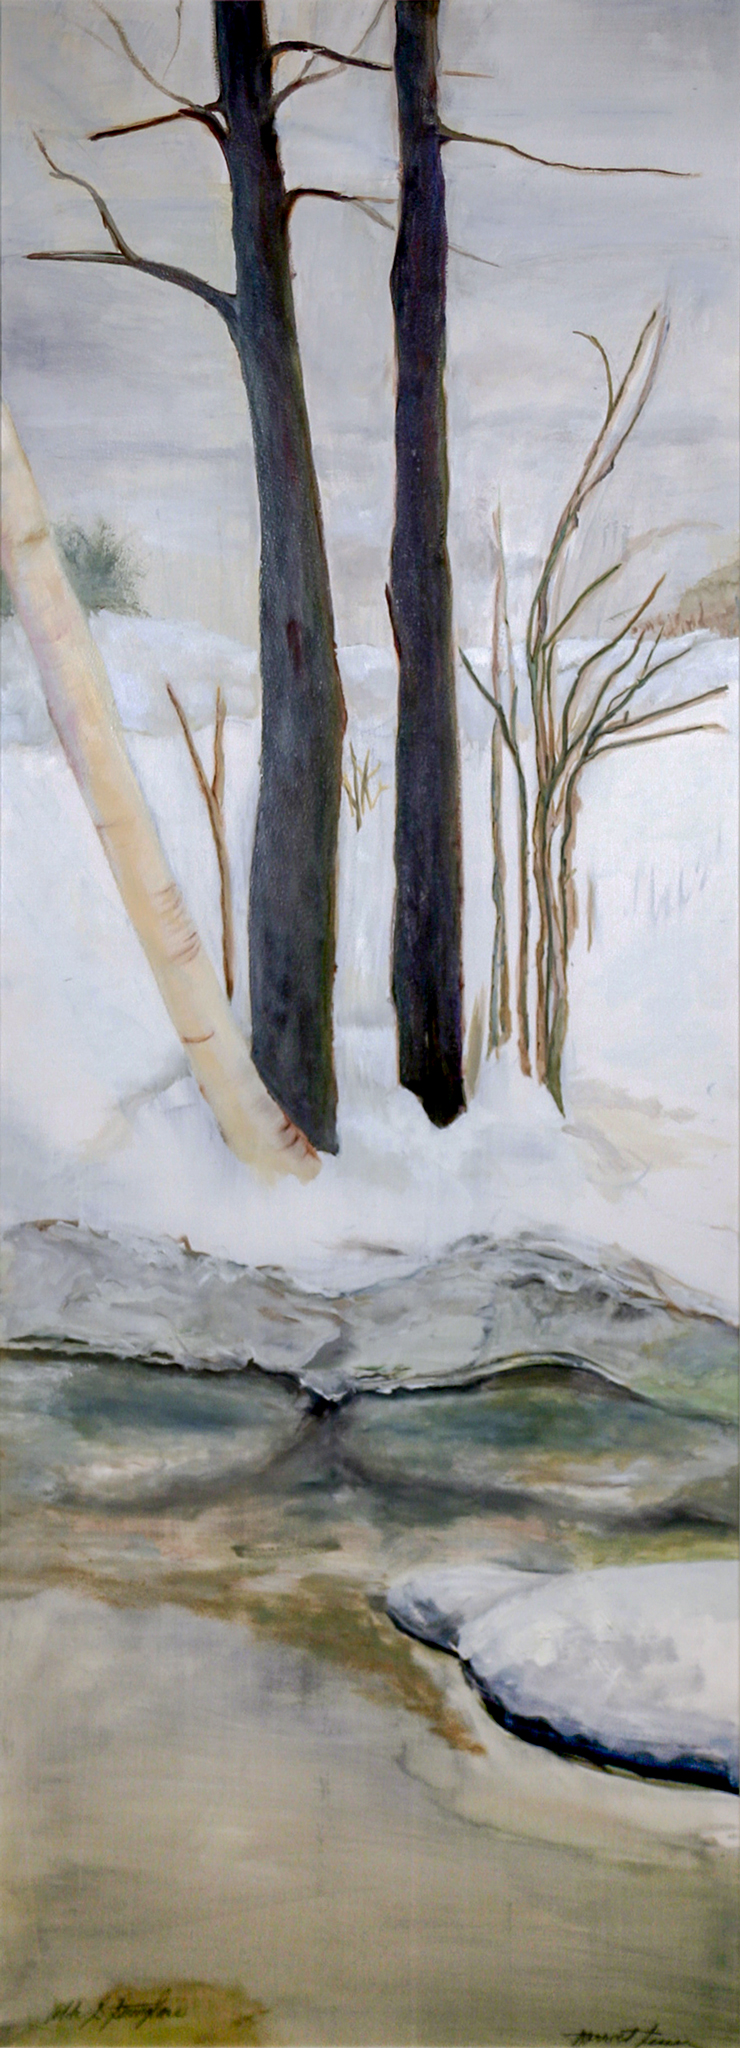 Snow V  (one of a six-panel screen) oil/paper/wood